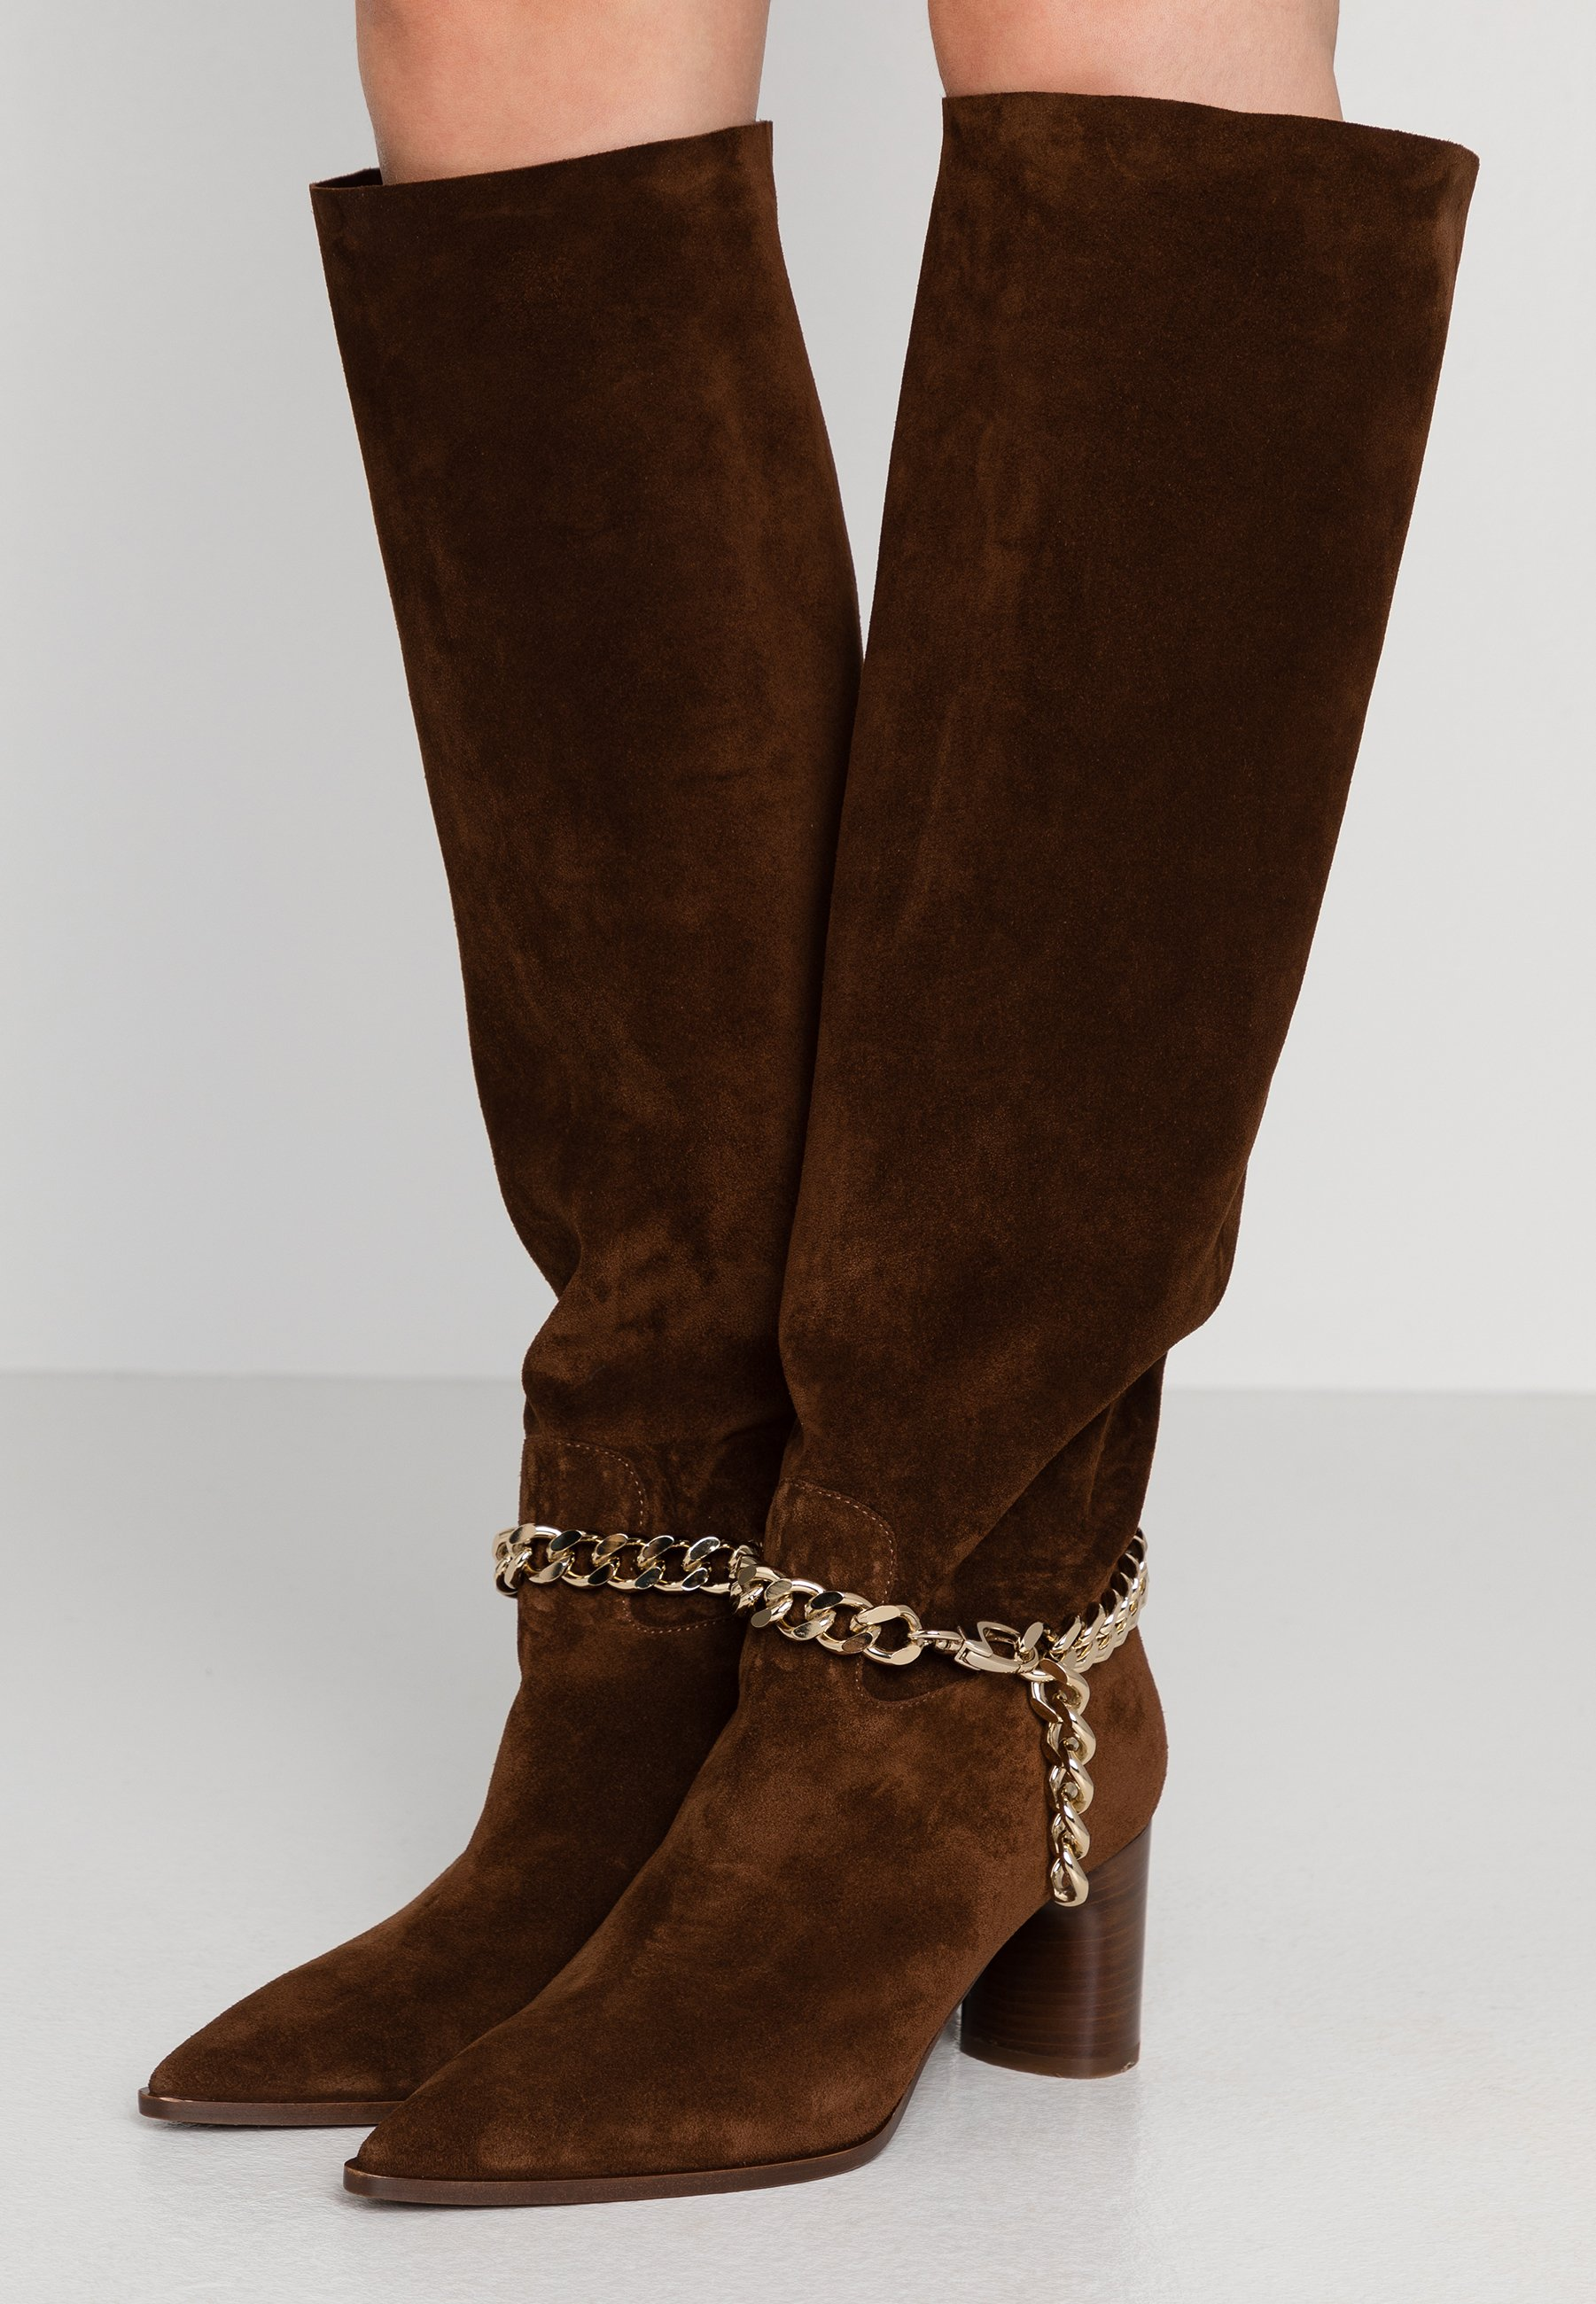 Official Site Women's Shoes Casadei Boots renna sella 1CmOoTpA1